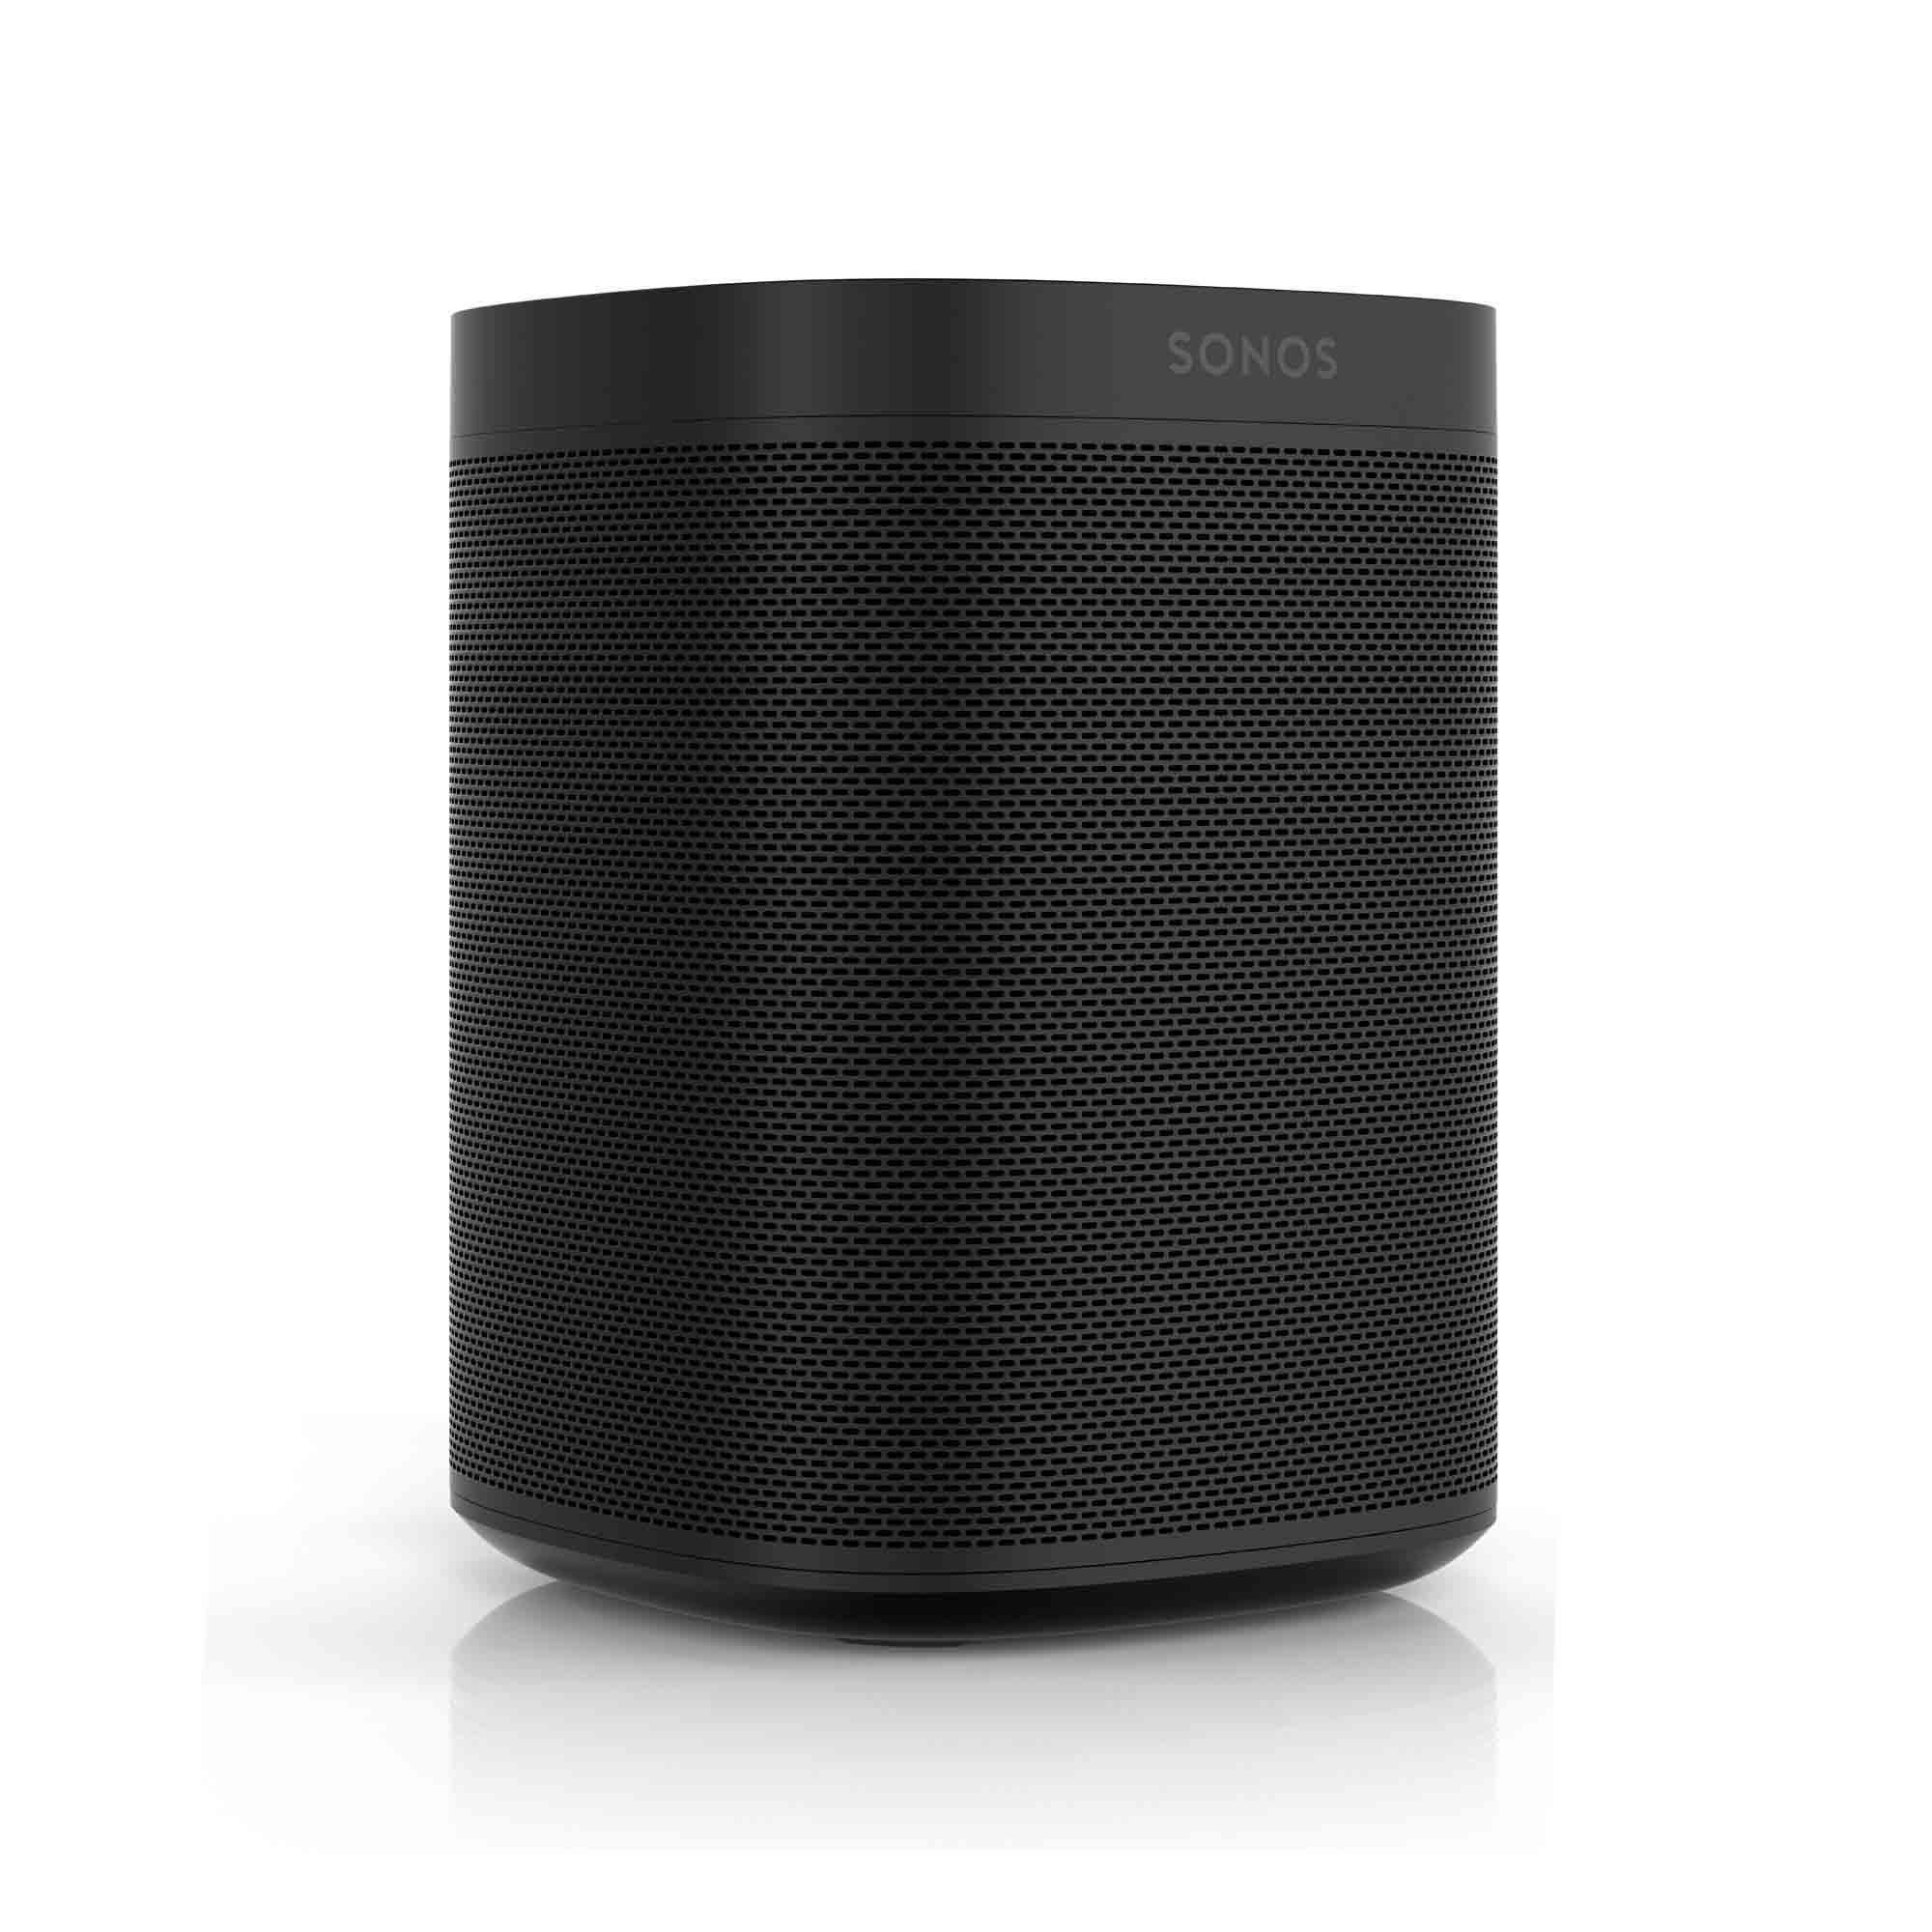 Sevenoaks Sound And Vision Sonos One Gen 2 Voice Controlled Wireless Speaker